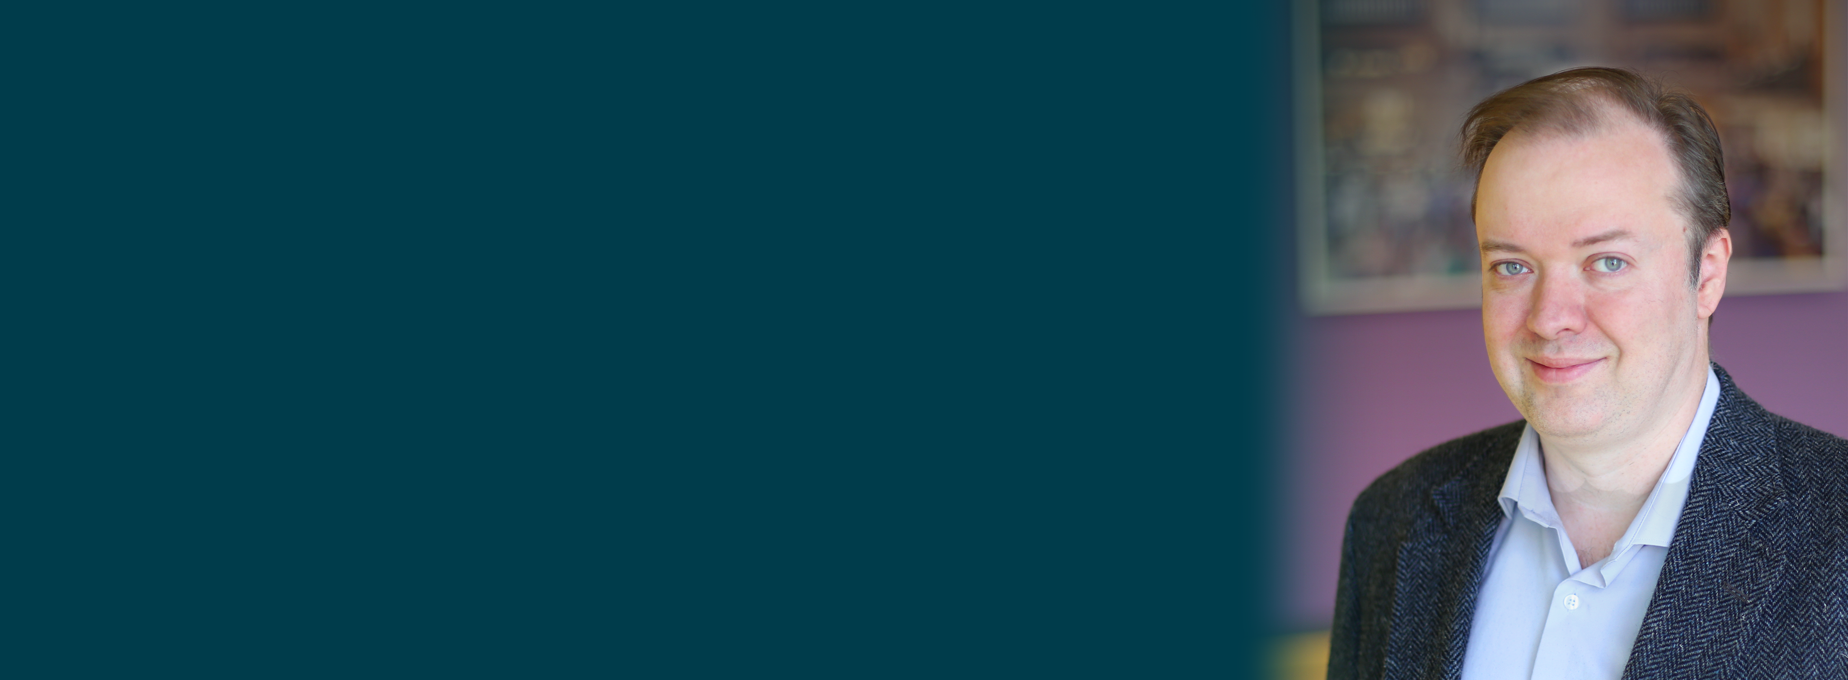 Michael Montague, PhD